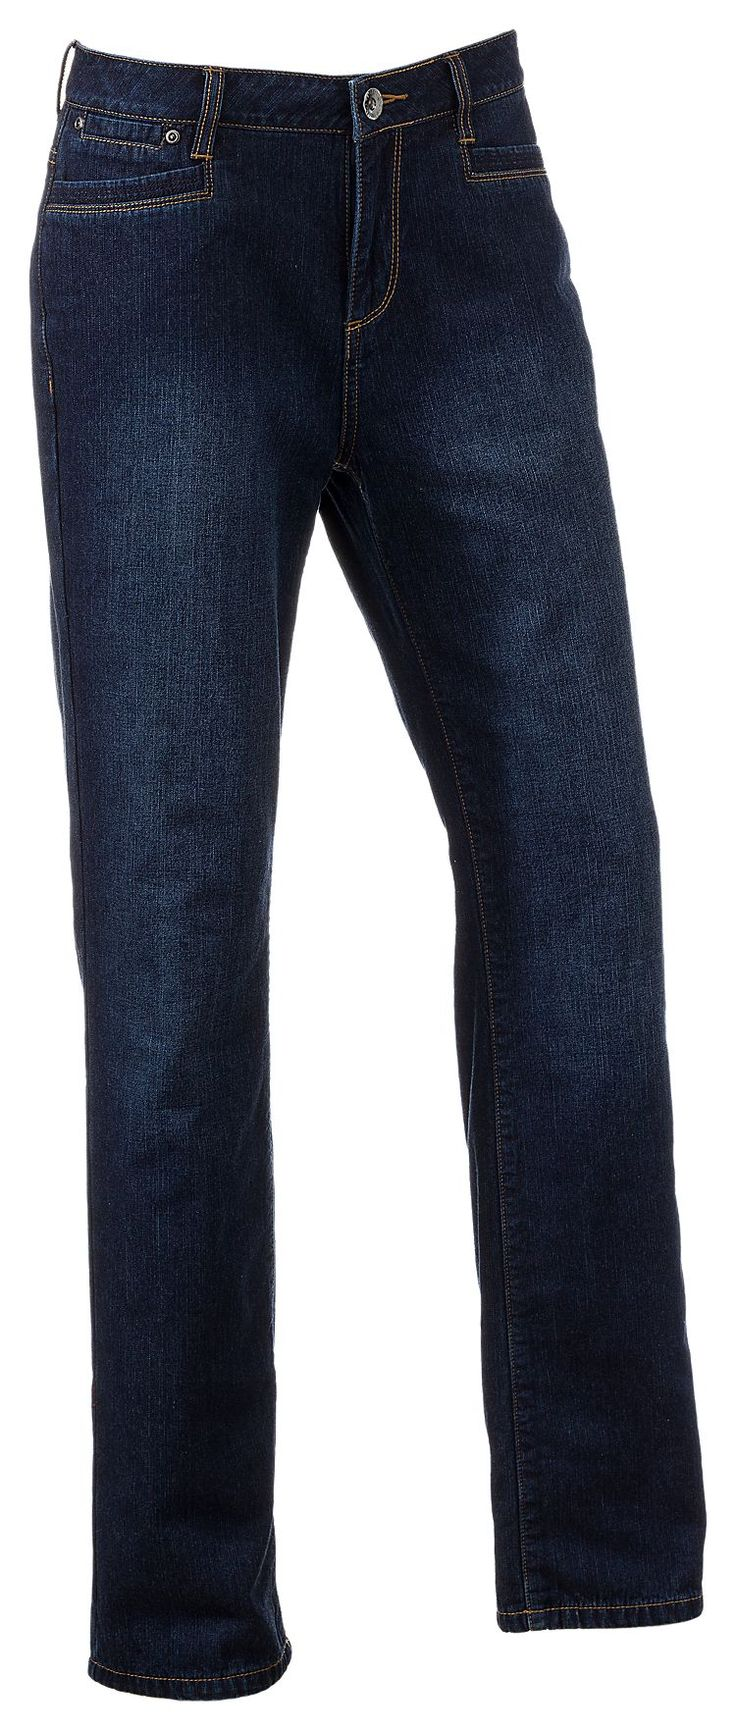 Natural Reflections Flannel-Lined Jeans for Ladies | Bass Pro Shops. Bought at a great price Black Friday